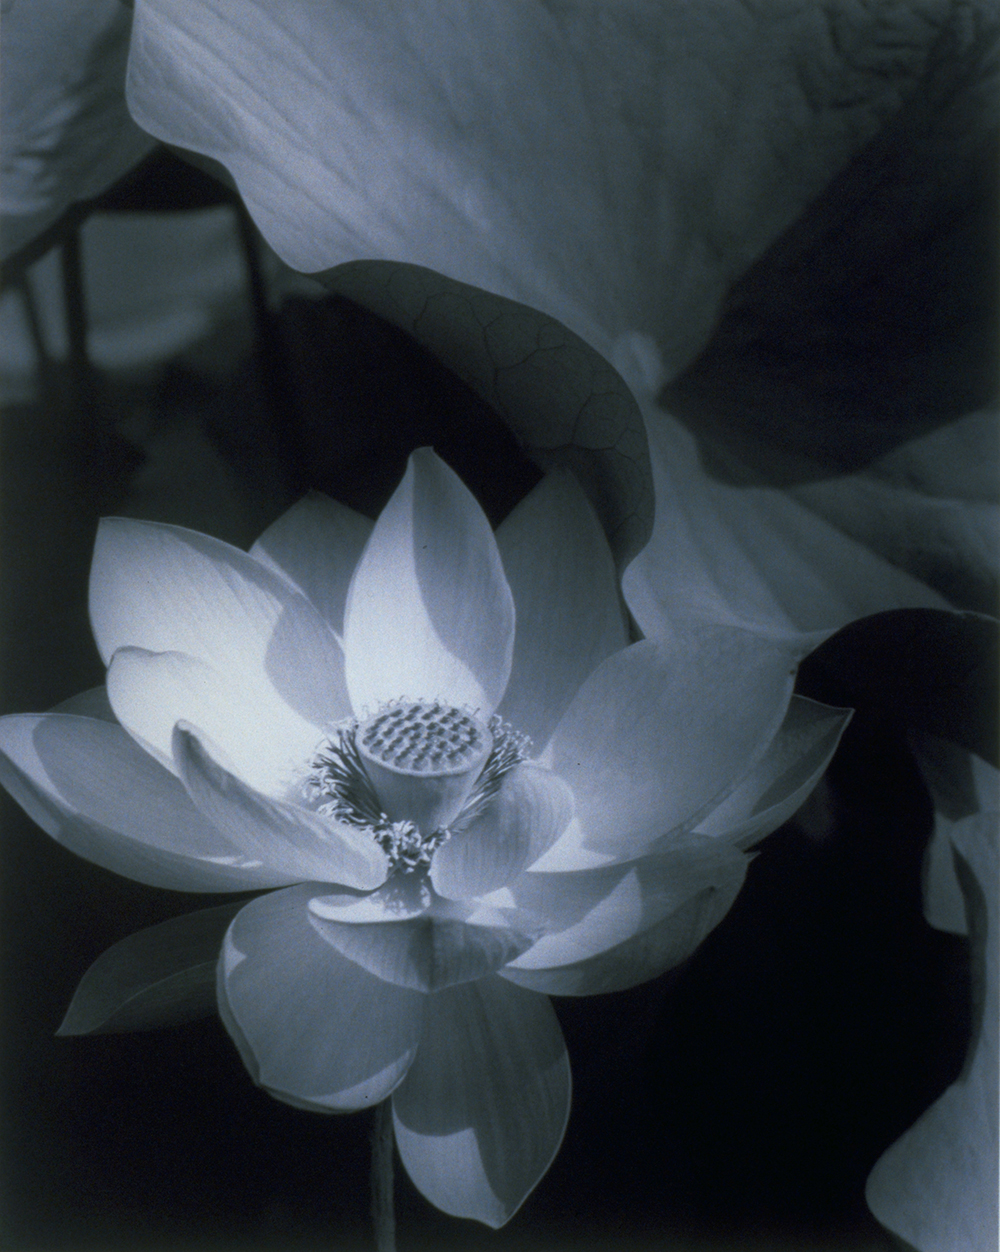 Edward Steichen. Lotus, Mount Kisco, New York, 1915; printed 1982, silver gelatin print, 13 1/4 x 10 1/2 inches (image & paper), Gift of Diane Singer in honor of the 8-31- 97 marriage of Diane Singer to Eric Pearlman.